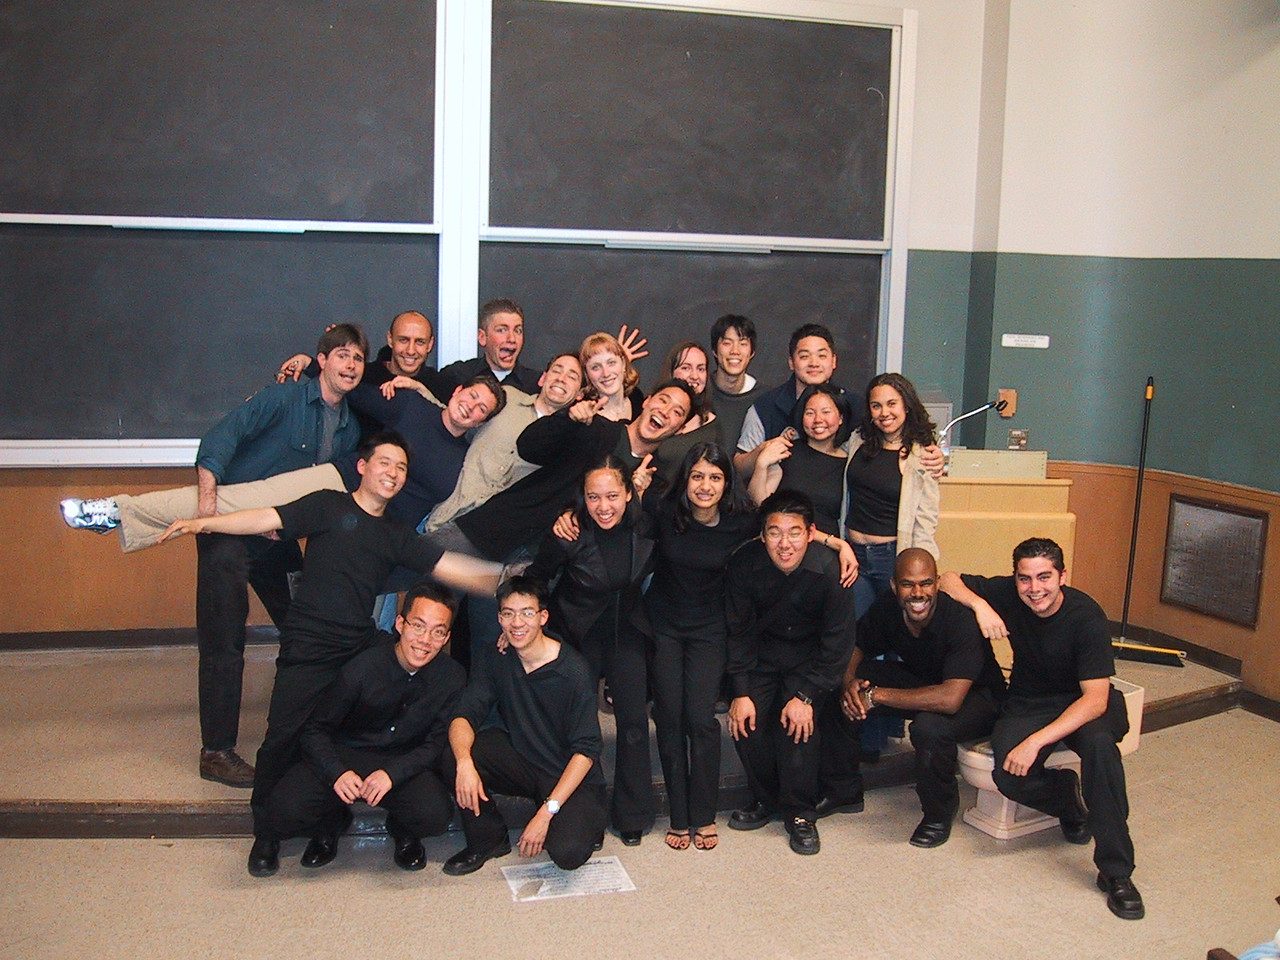 AiR Spring 2002 Concert pic with Alumni